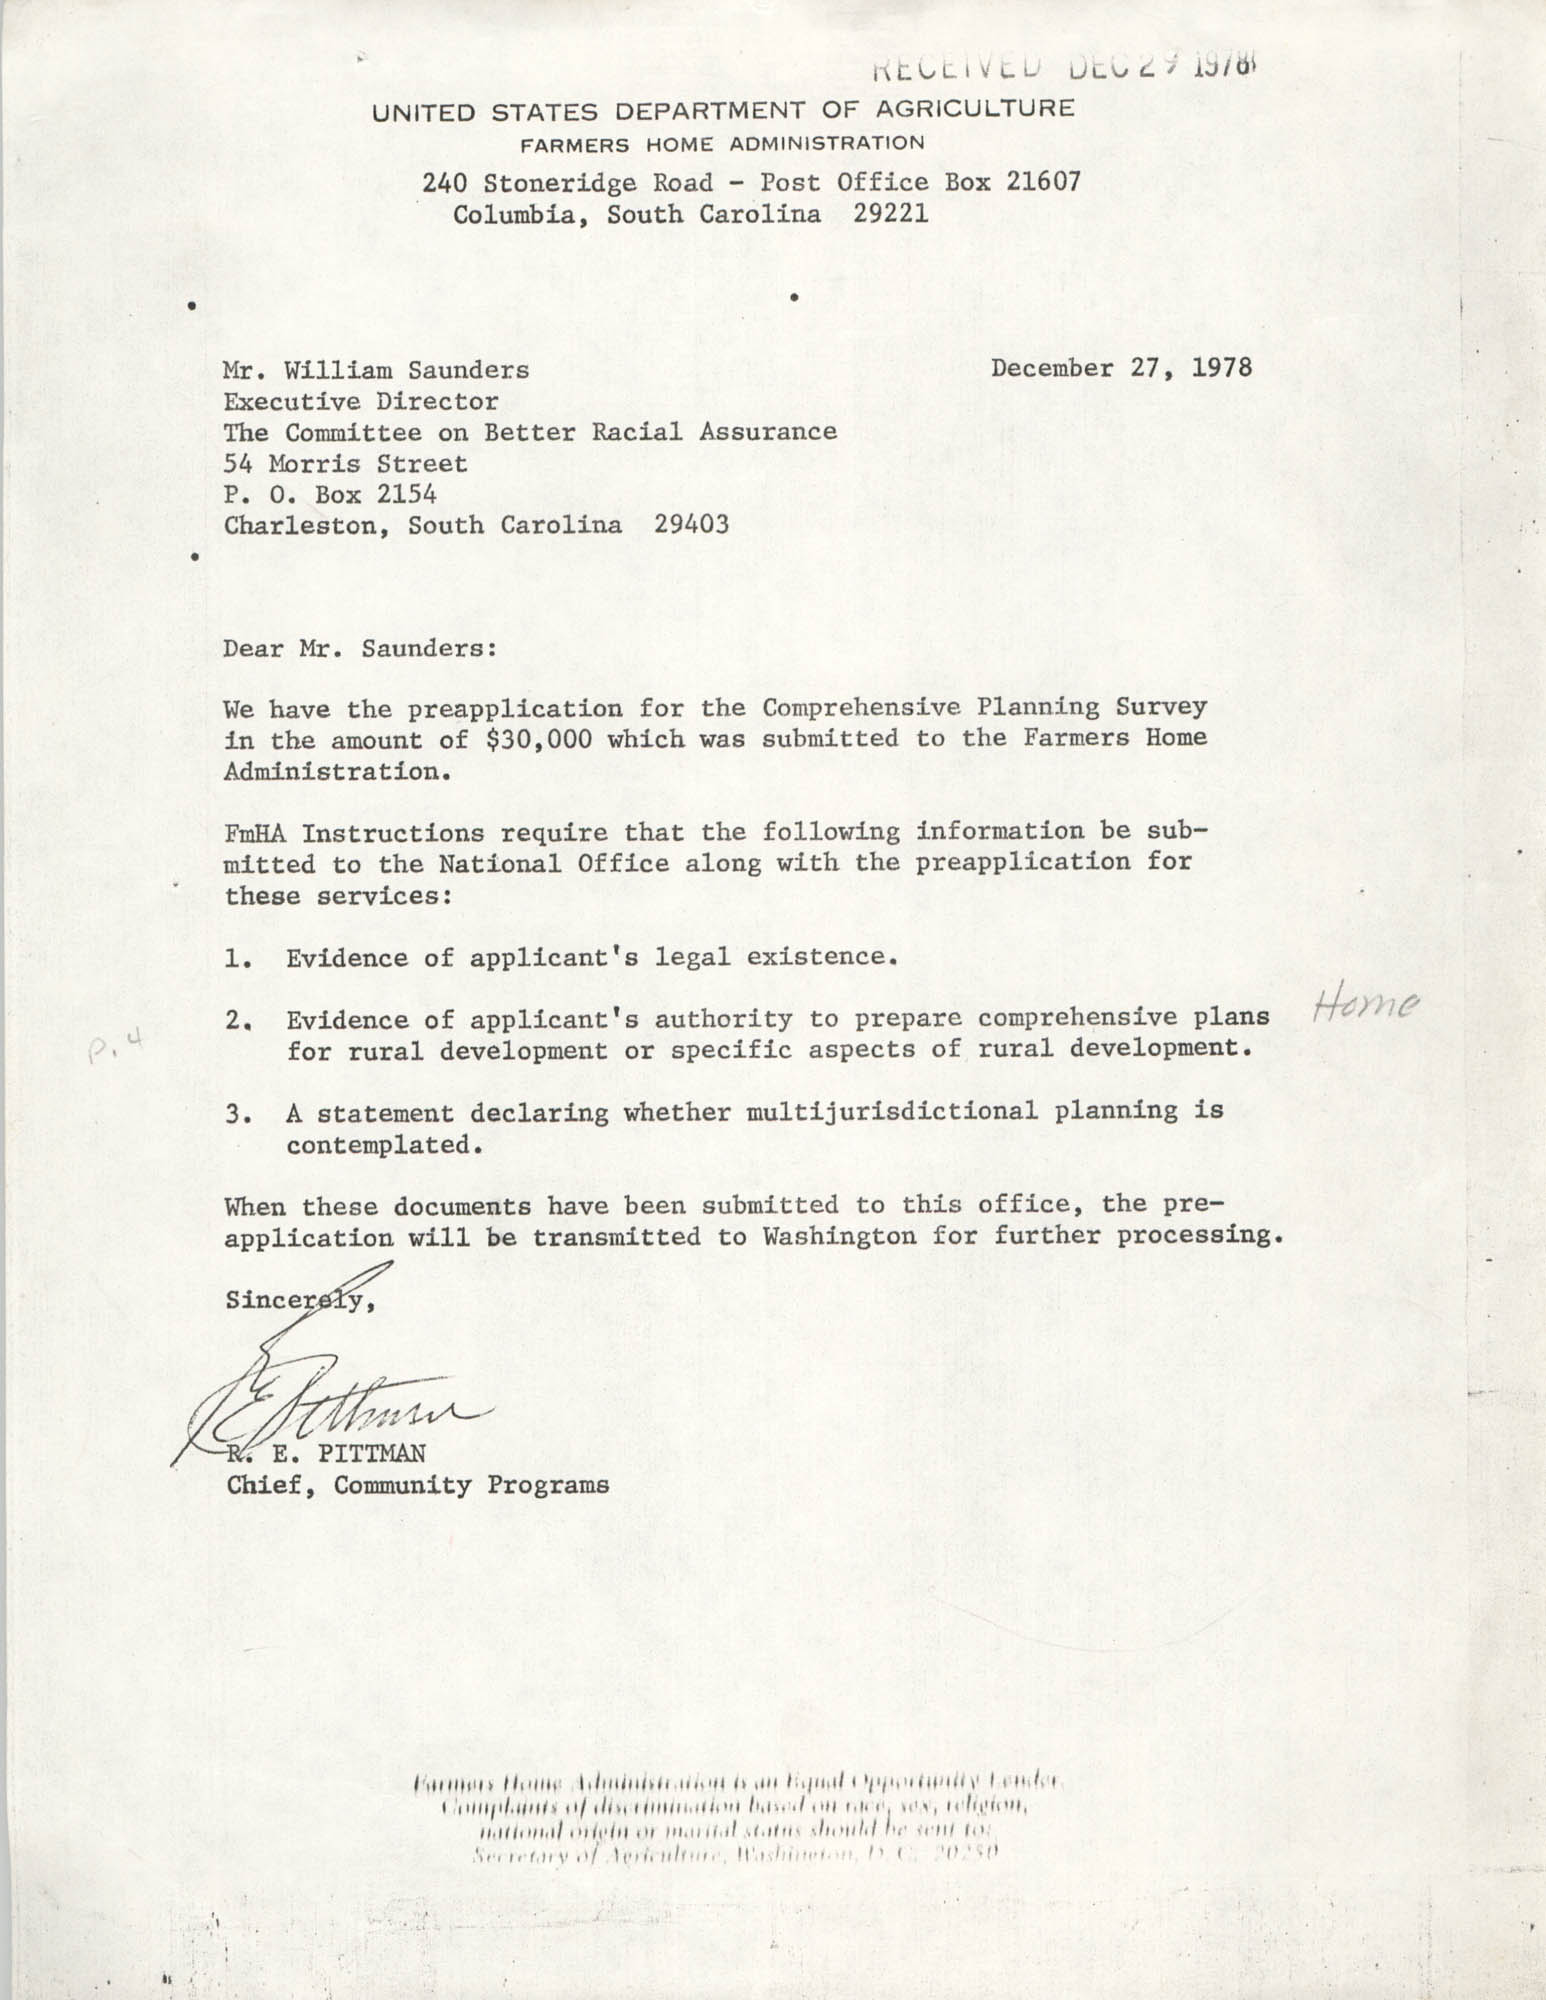 Letter from R. E. Pittman to William Saunders, December 27, 1978